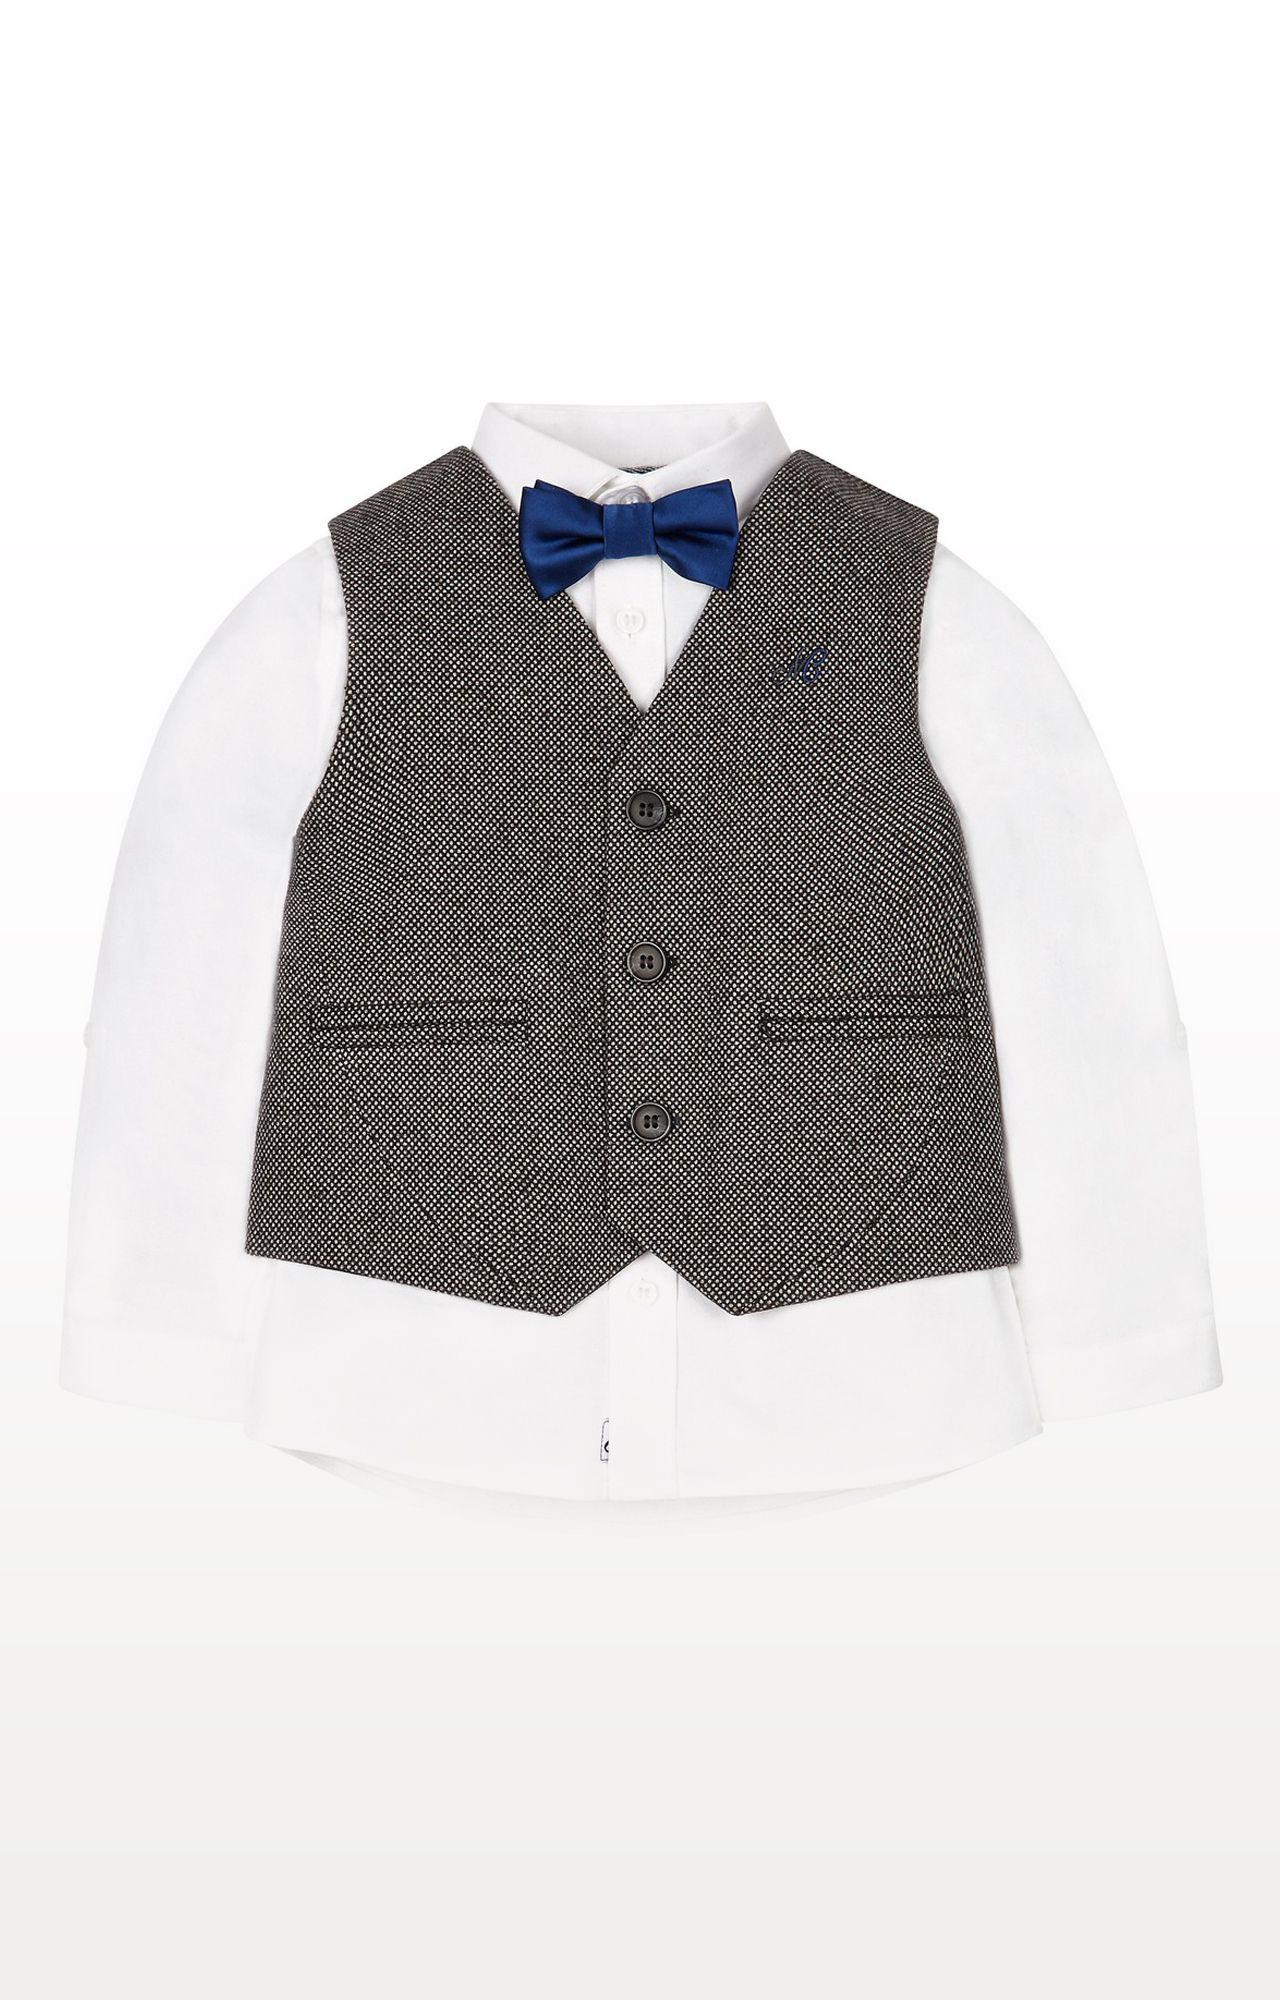 Mothercare | Shirt, Waistcoat and Bow Tie Set